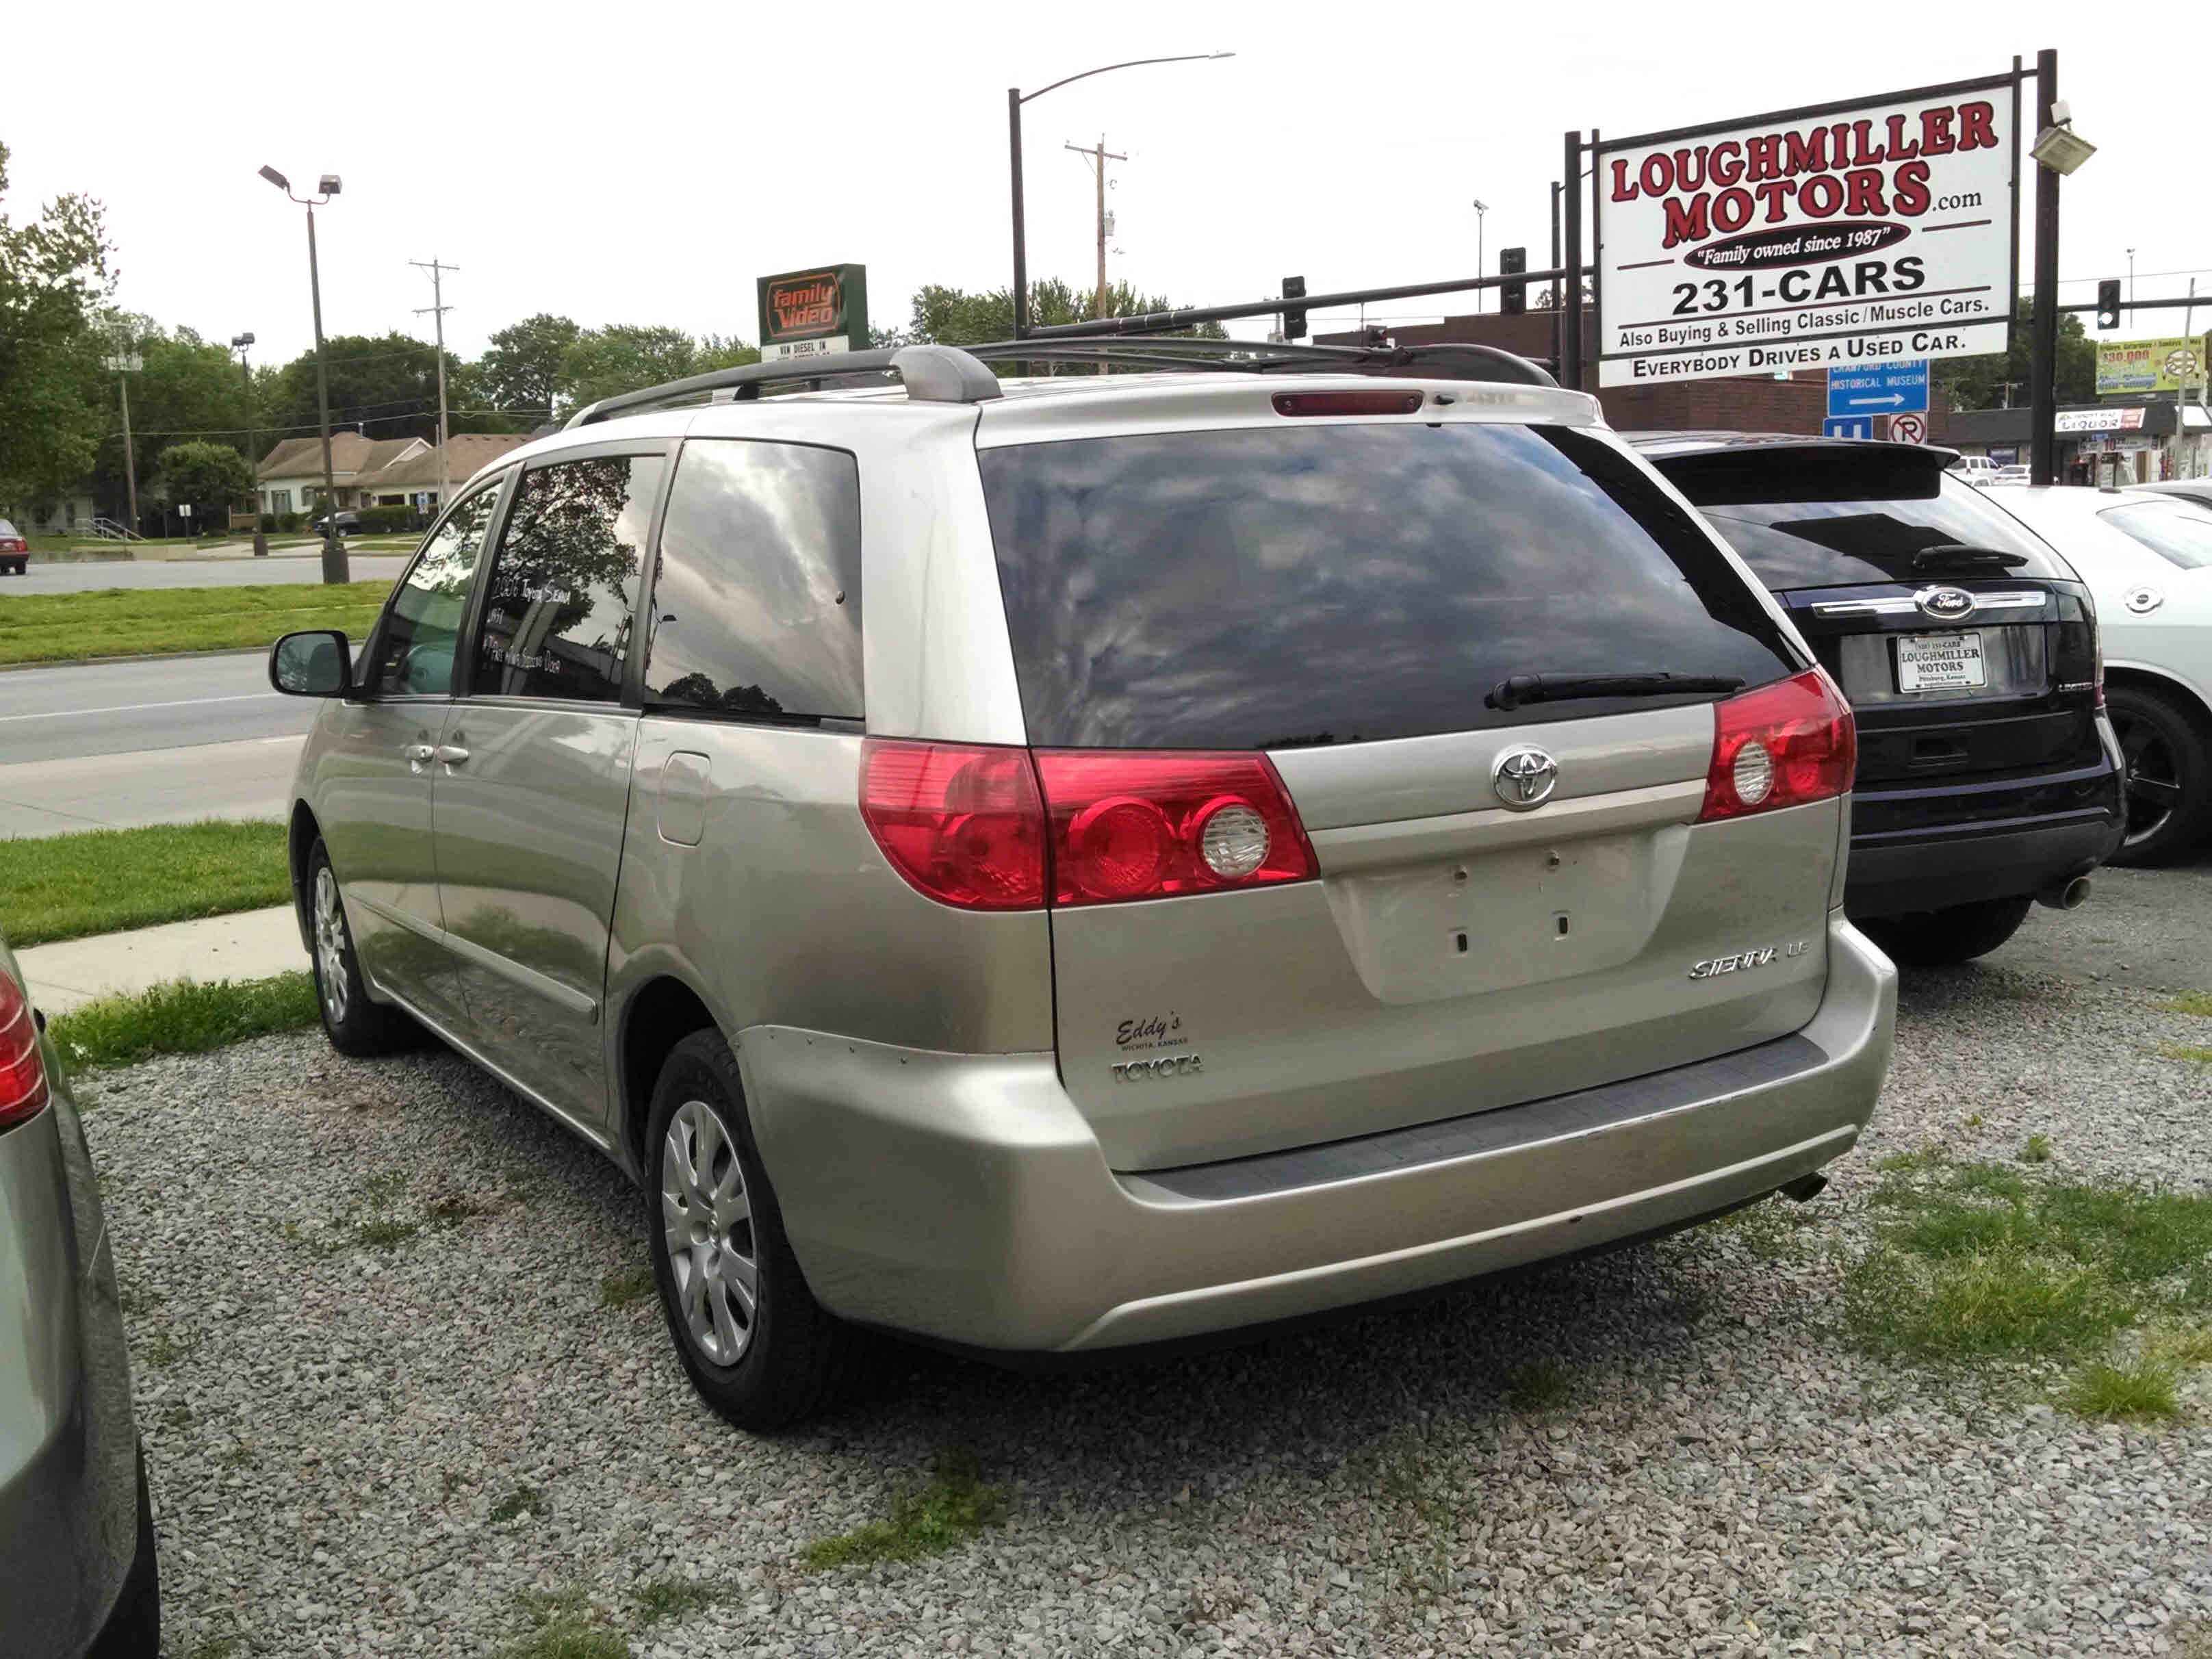 06sienna3g damage good in any state 100 ready for you to register and tag in your name without any hassles we do not guarantee that vehicles will pass other publicscrutiny Choice Image